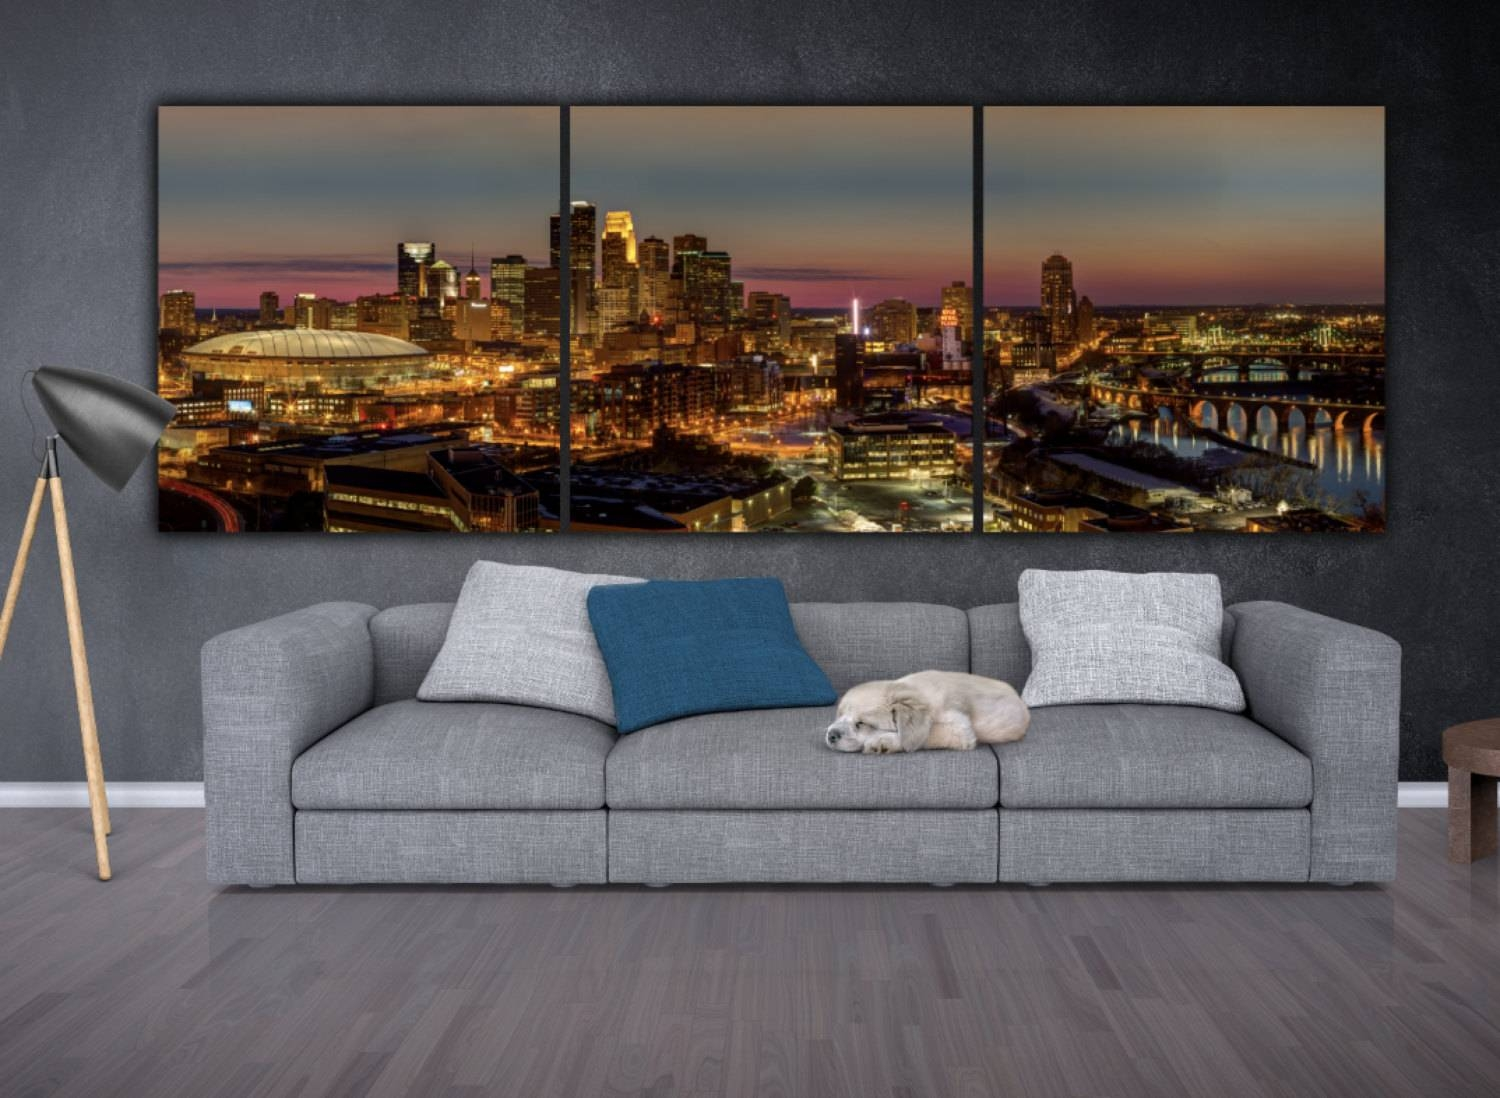 Minneapolis Skyline On Canvas Large Wall Art Minneapolis With Regard To Most Recent Minneapolis Wall Art (View 1 of 20)